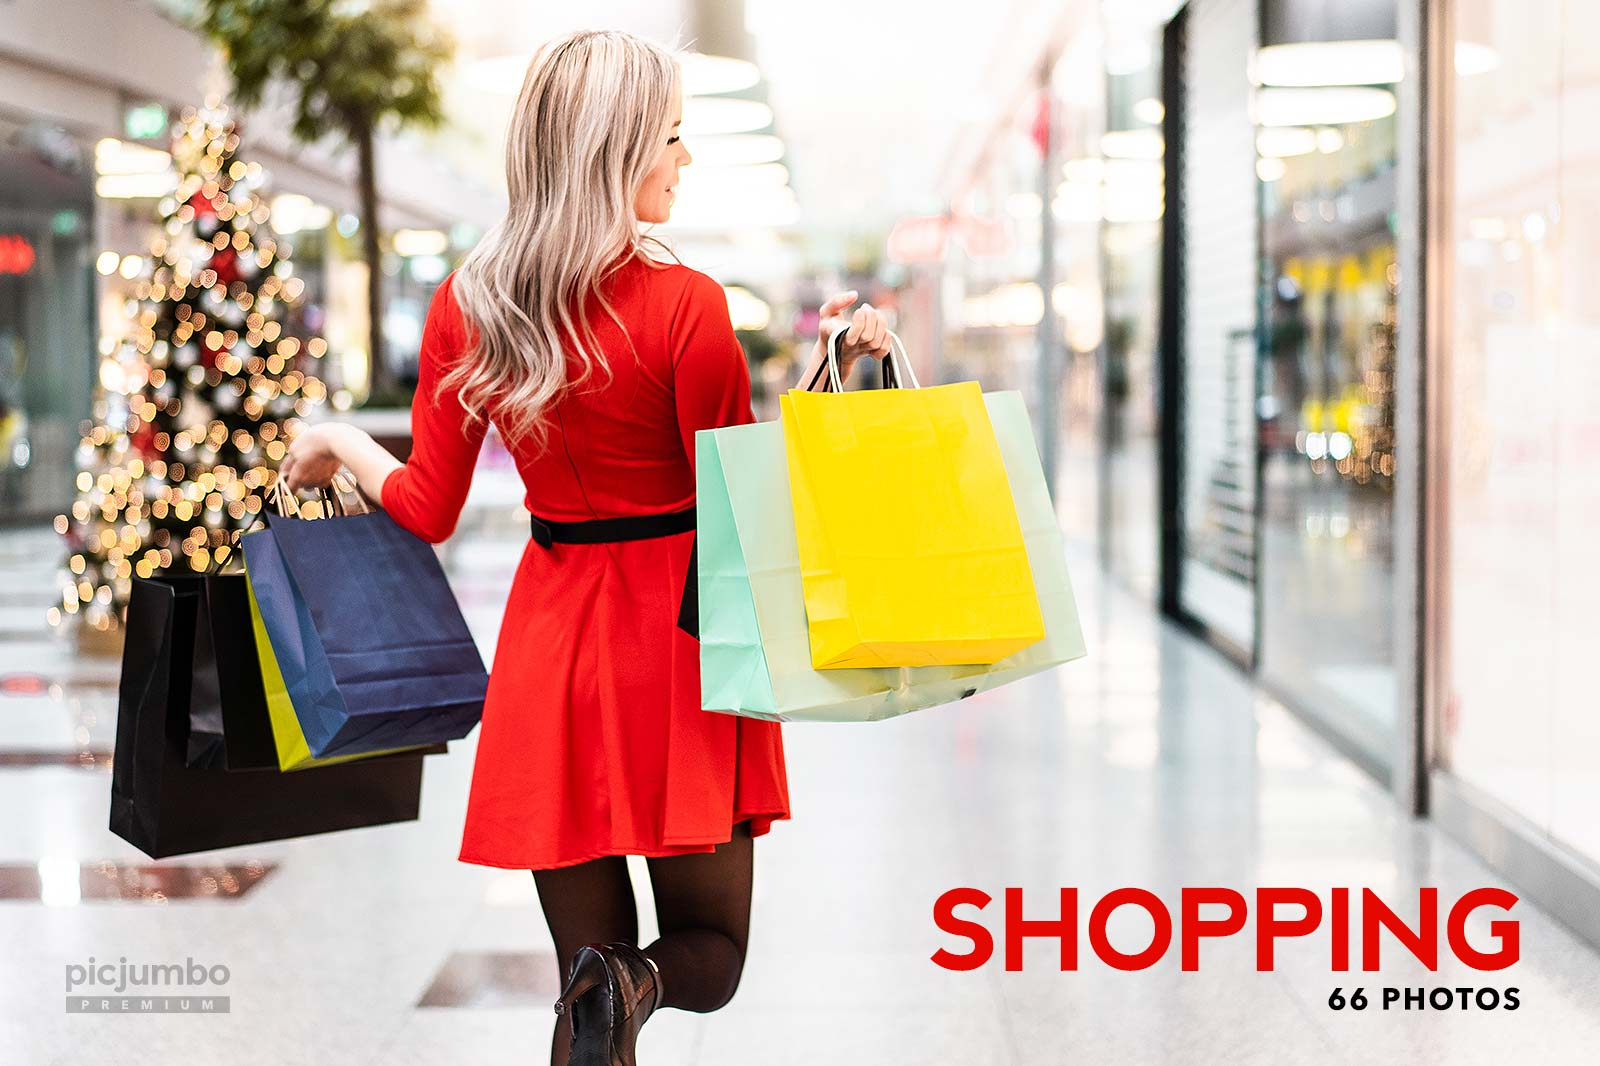 Shopping — get it now in picjumbo PREMIUM!